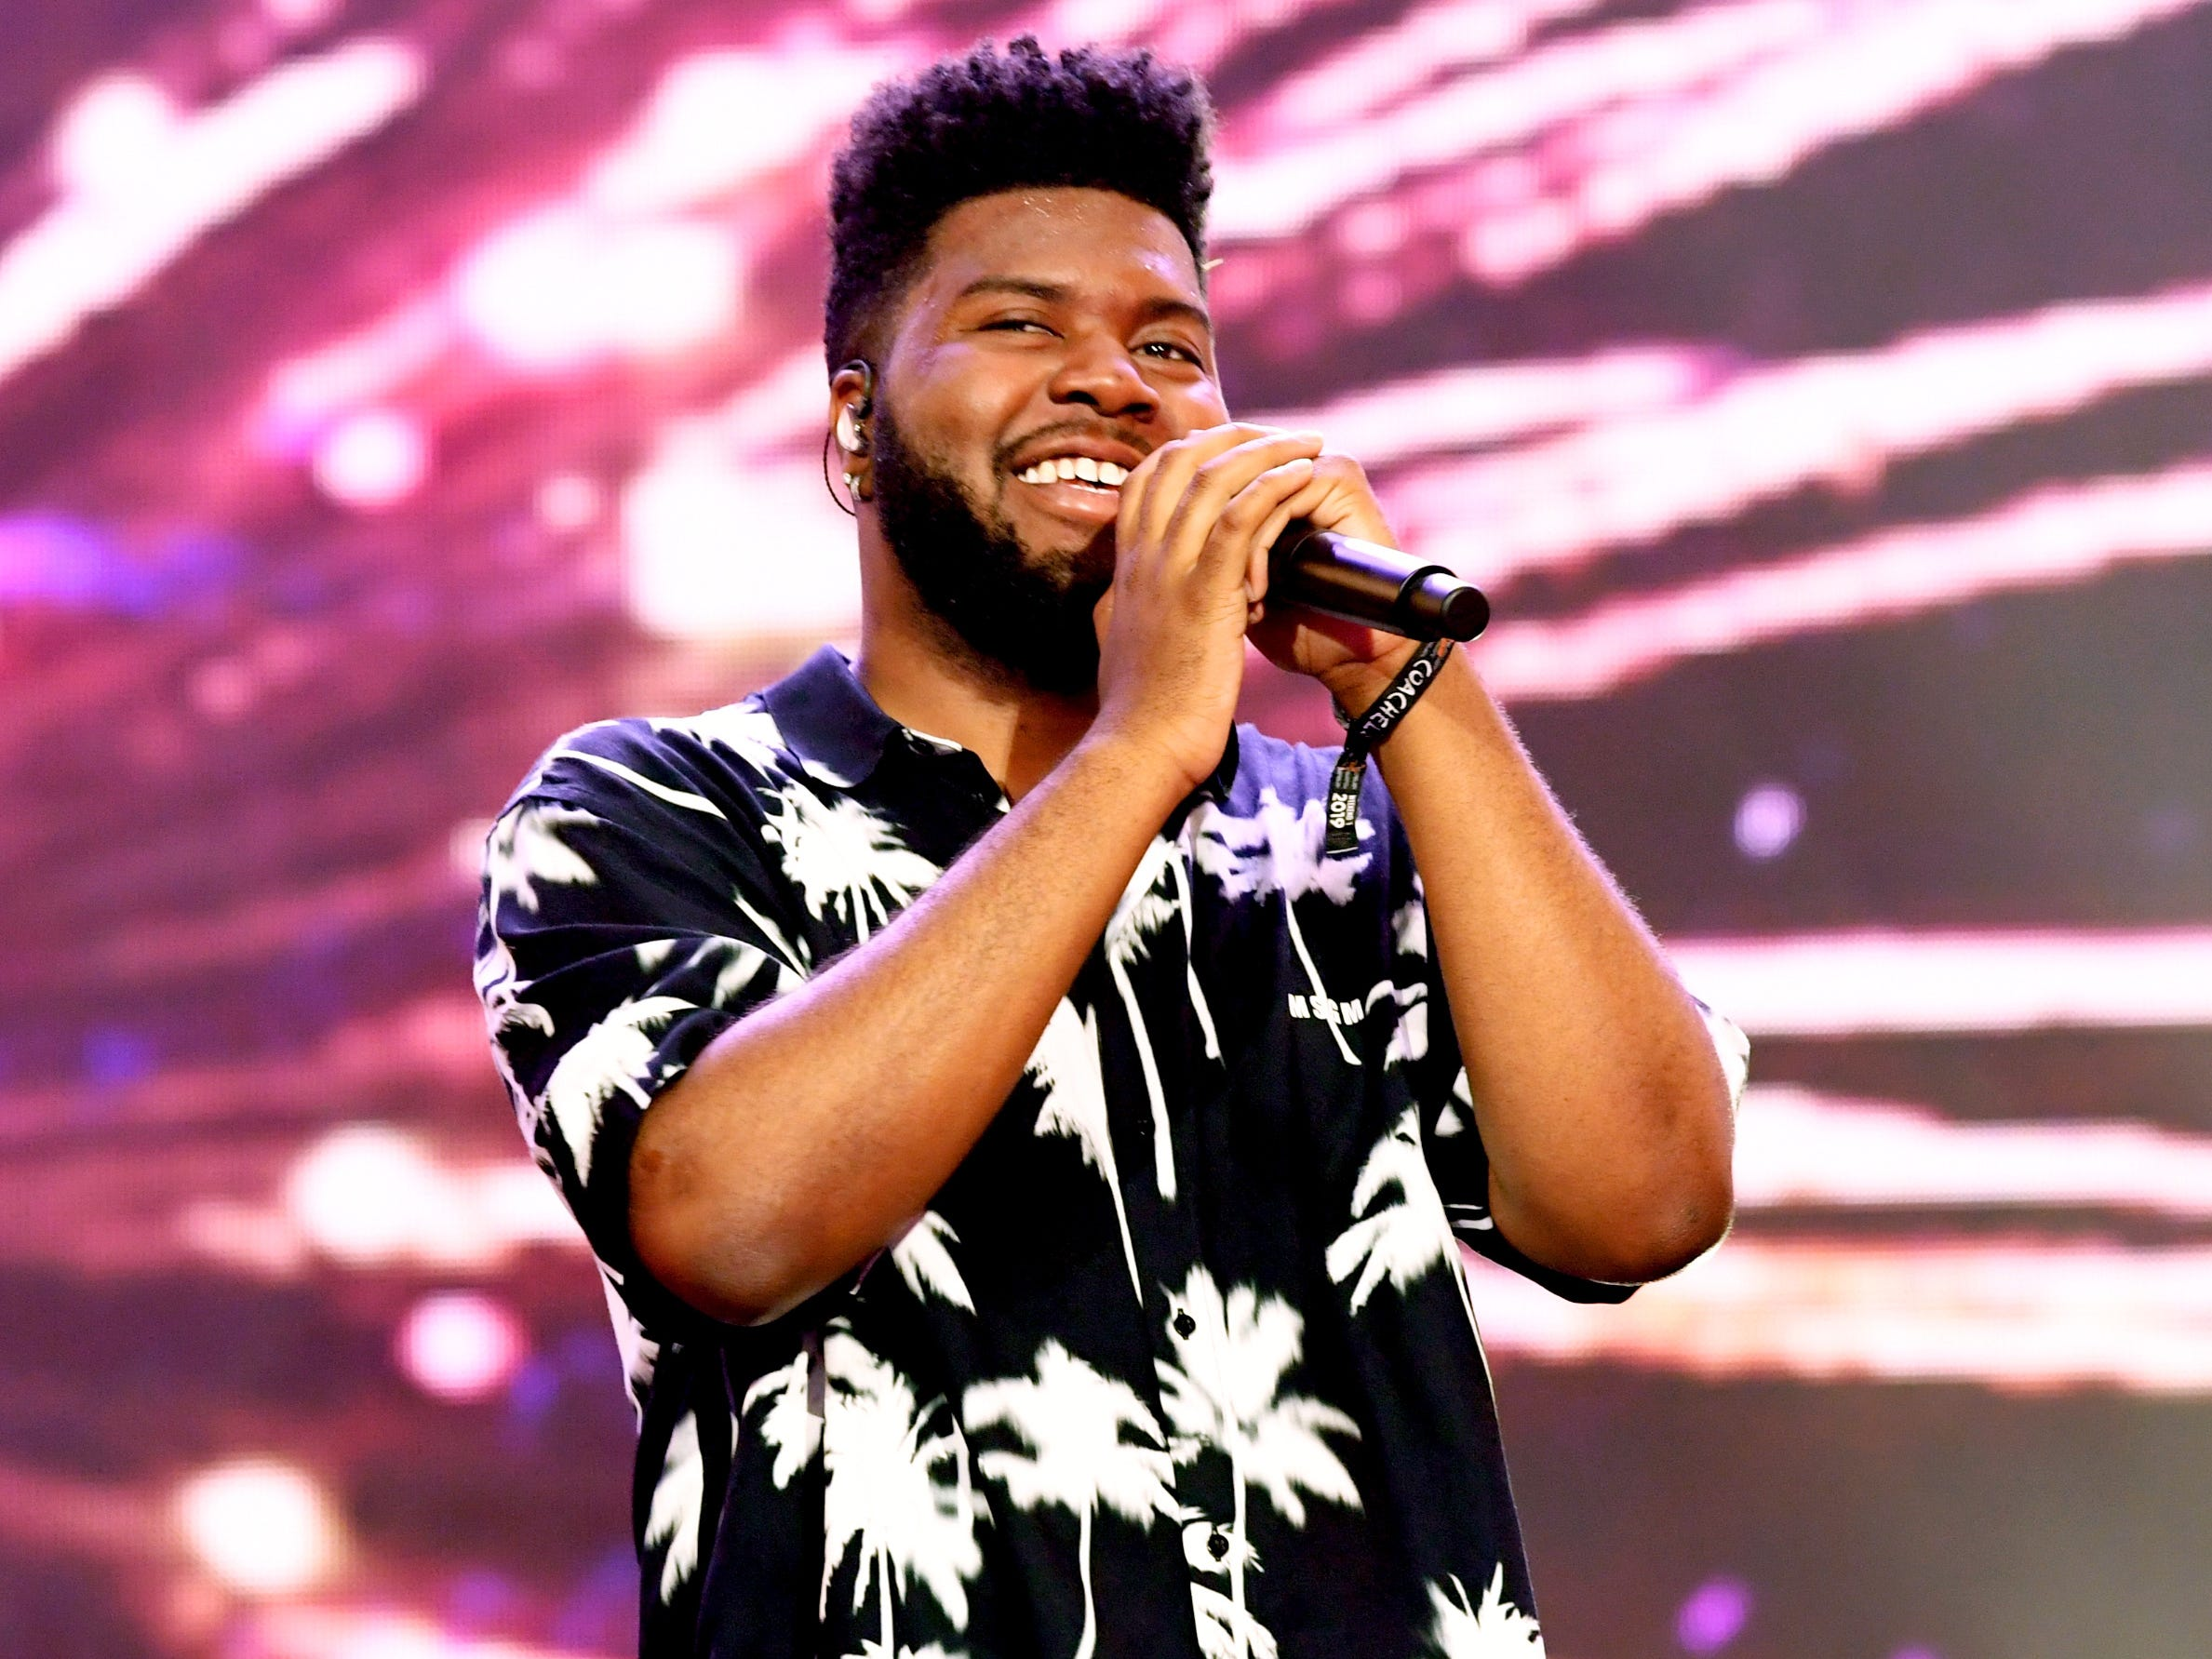 INDIO, CA - APRIL 14:  Khalid performs on Coachella Stage during the 2019 Coachella Valley Music And Arts Festival on April 14, 2019 in Indio, California.  (Photo by Kevin Winter/Getty Images for Coachella) ORG XMIT: 775277732 ORIG FILE ID: 1137242921